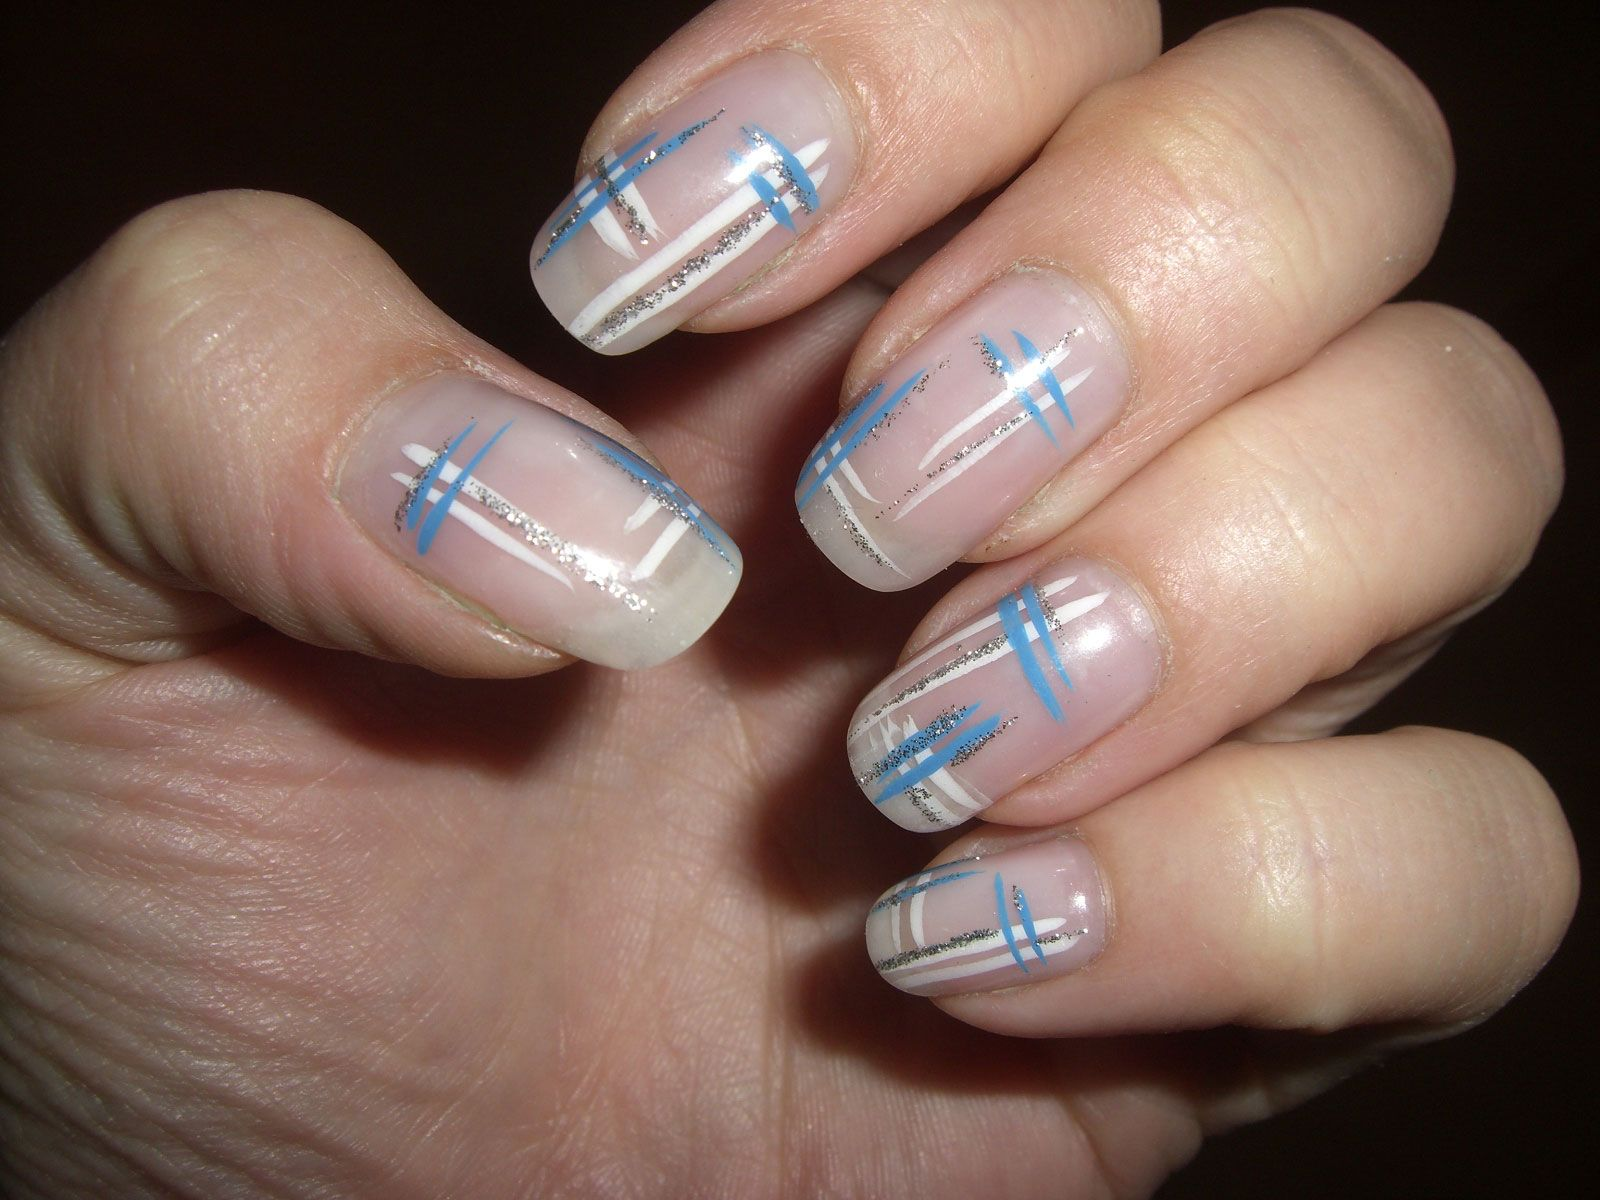 Pin by sophie ferguson on Nails | Pinterest | French manicure nails ...